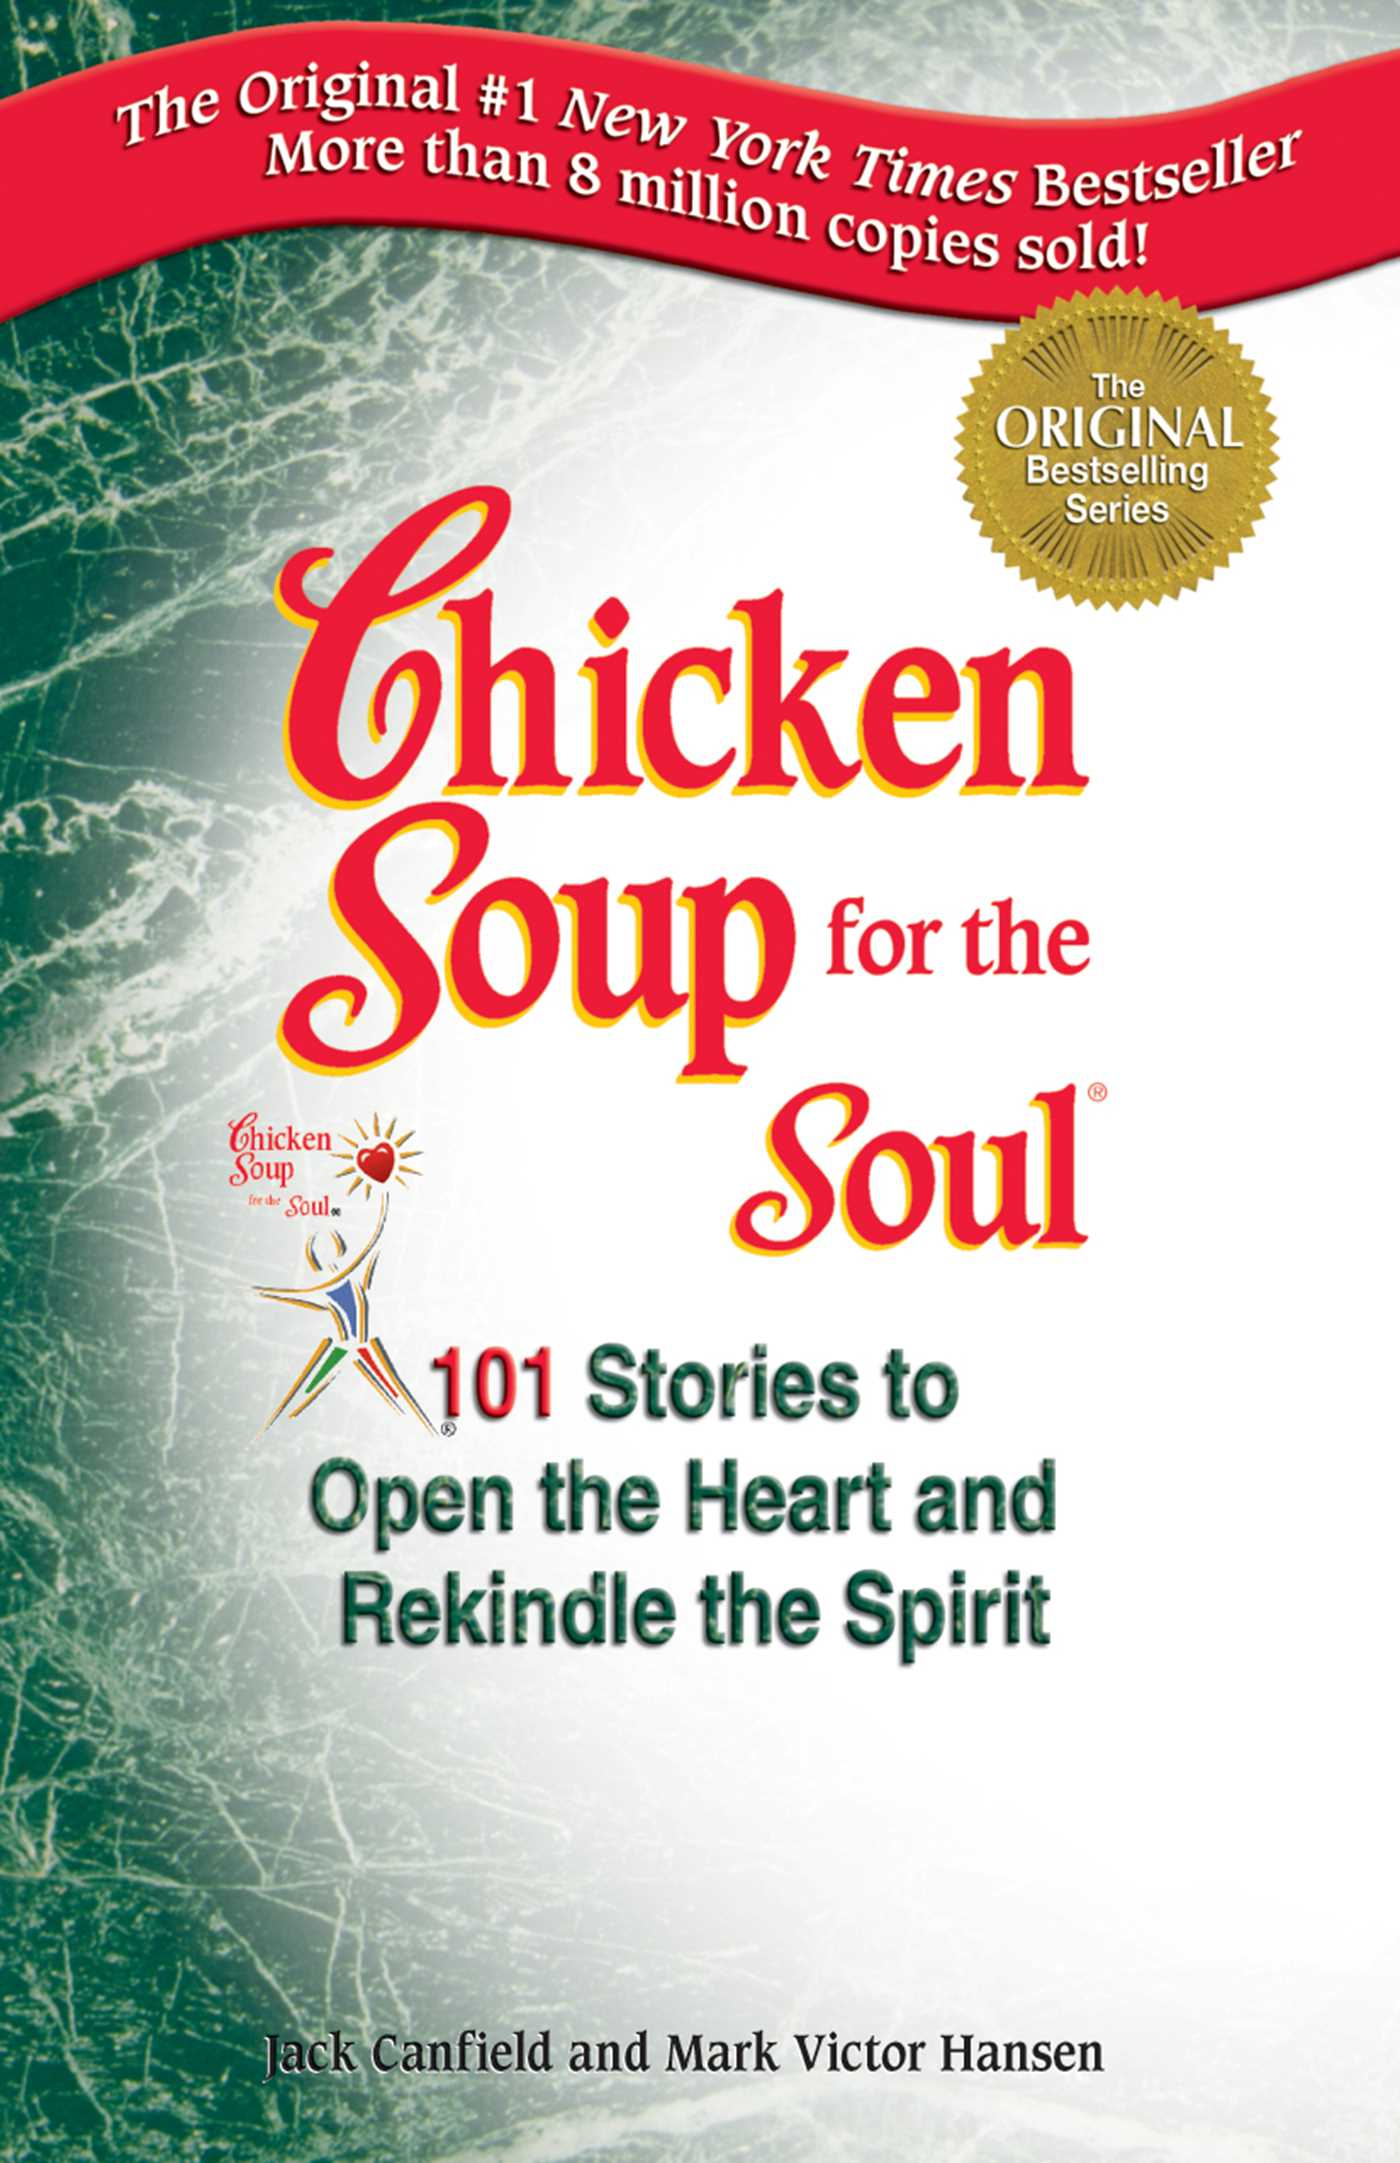 Chicken soup for the soul 9781453279915 hr